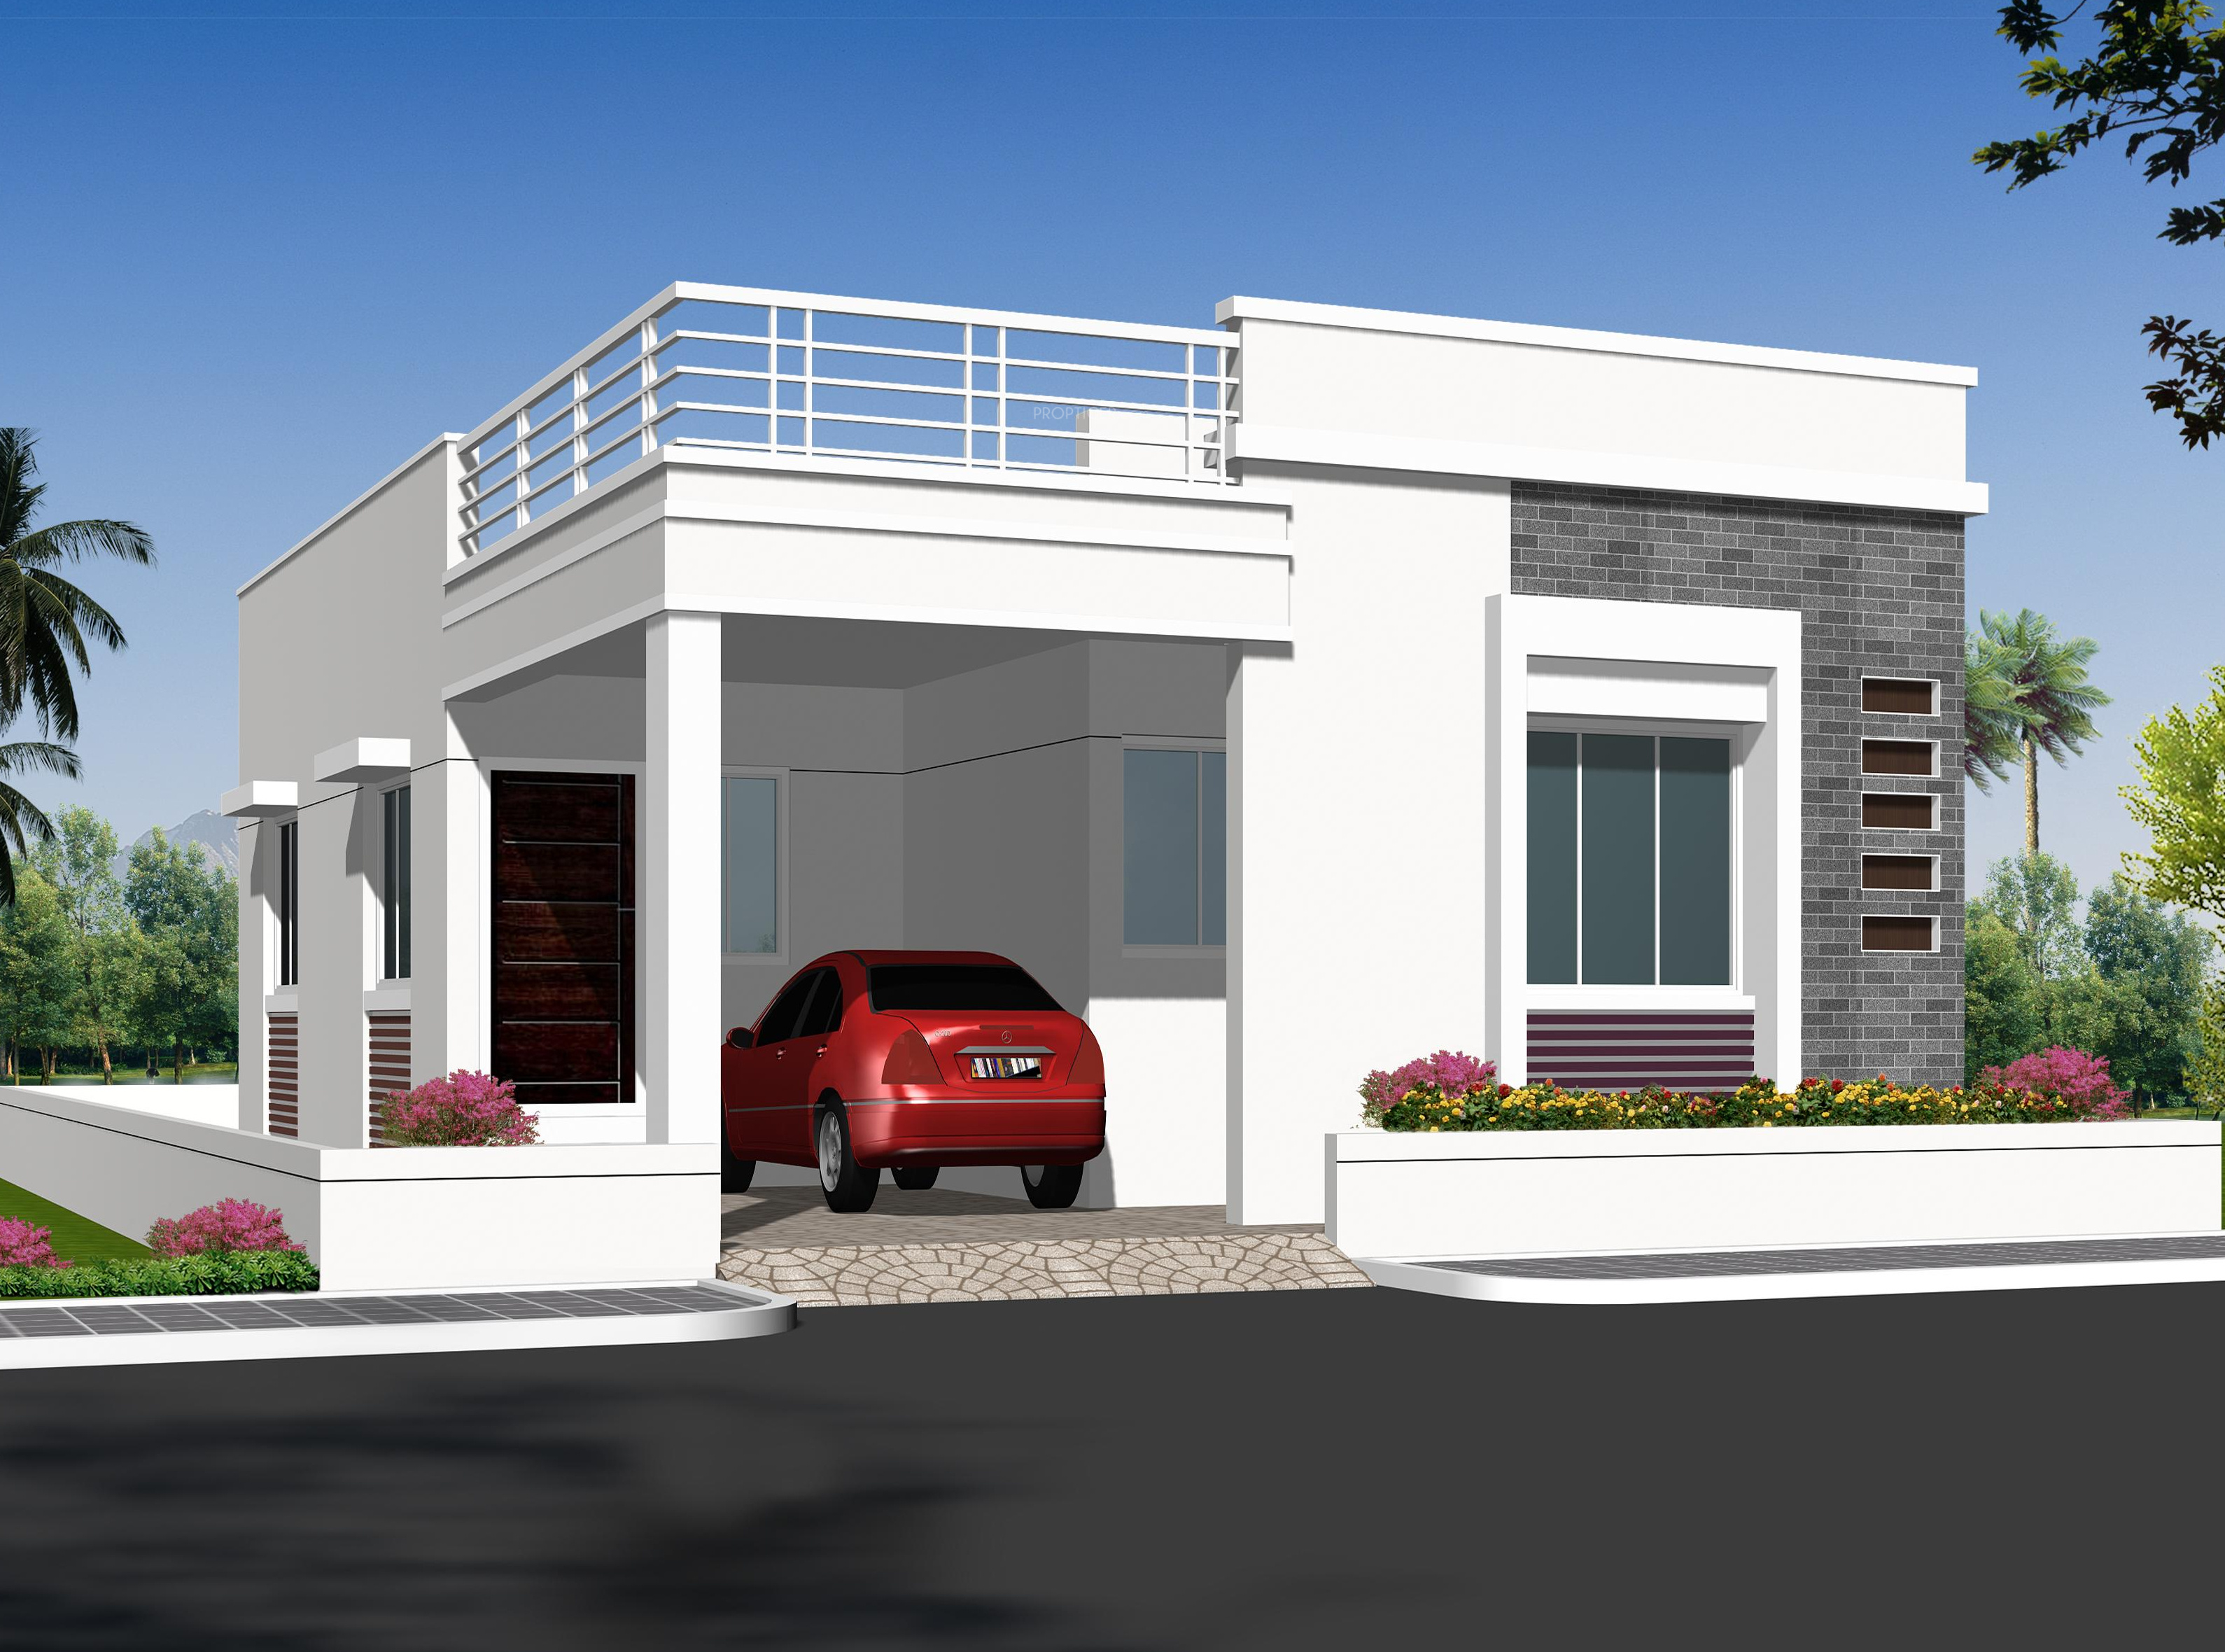 2242 Sq Ft 3 BHK 4T Villa For Sale In Ajasra Homes Akash